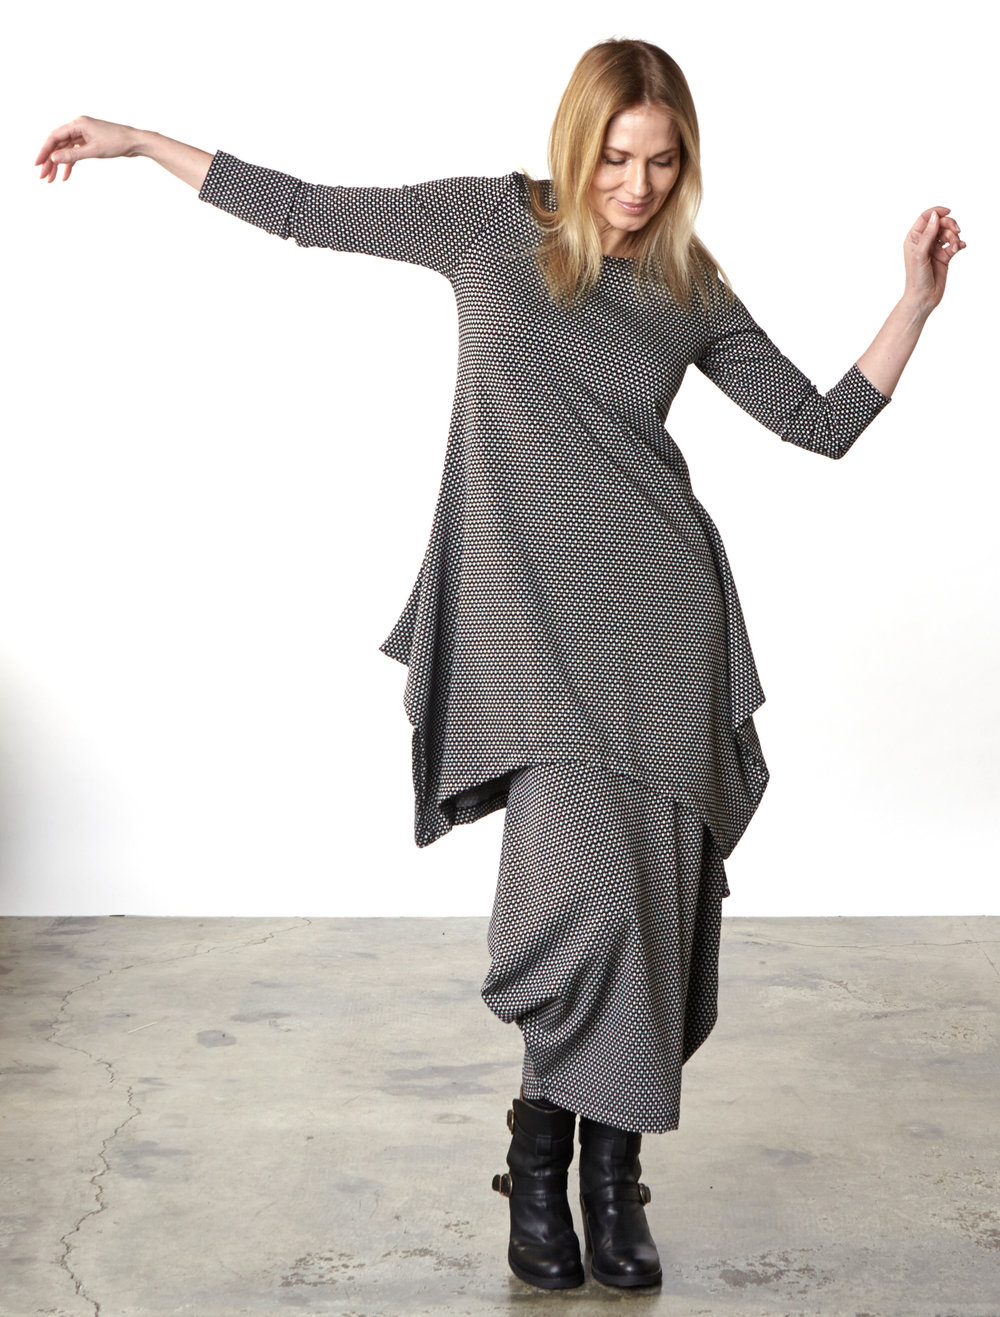 Chase Tunic, Hamish Skirt in Black/Cream Ready for Carnaby Street